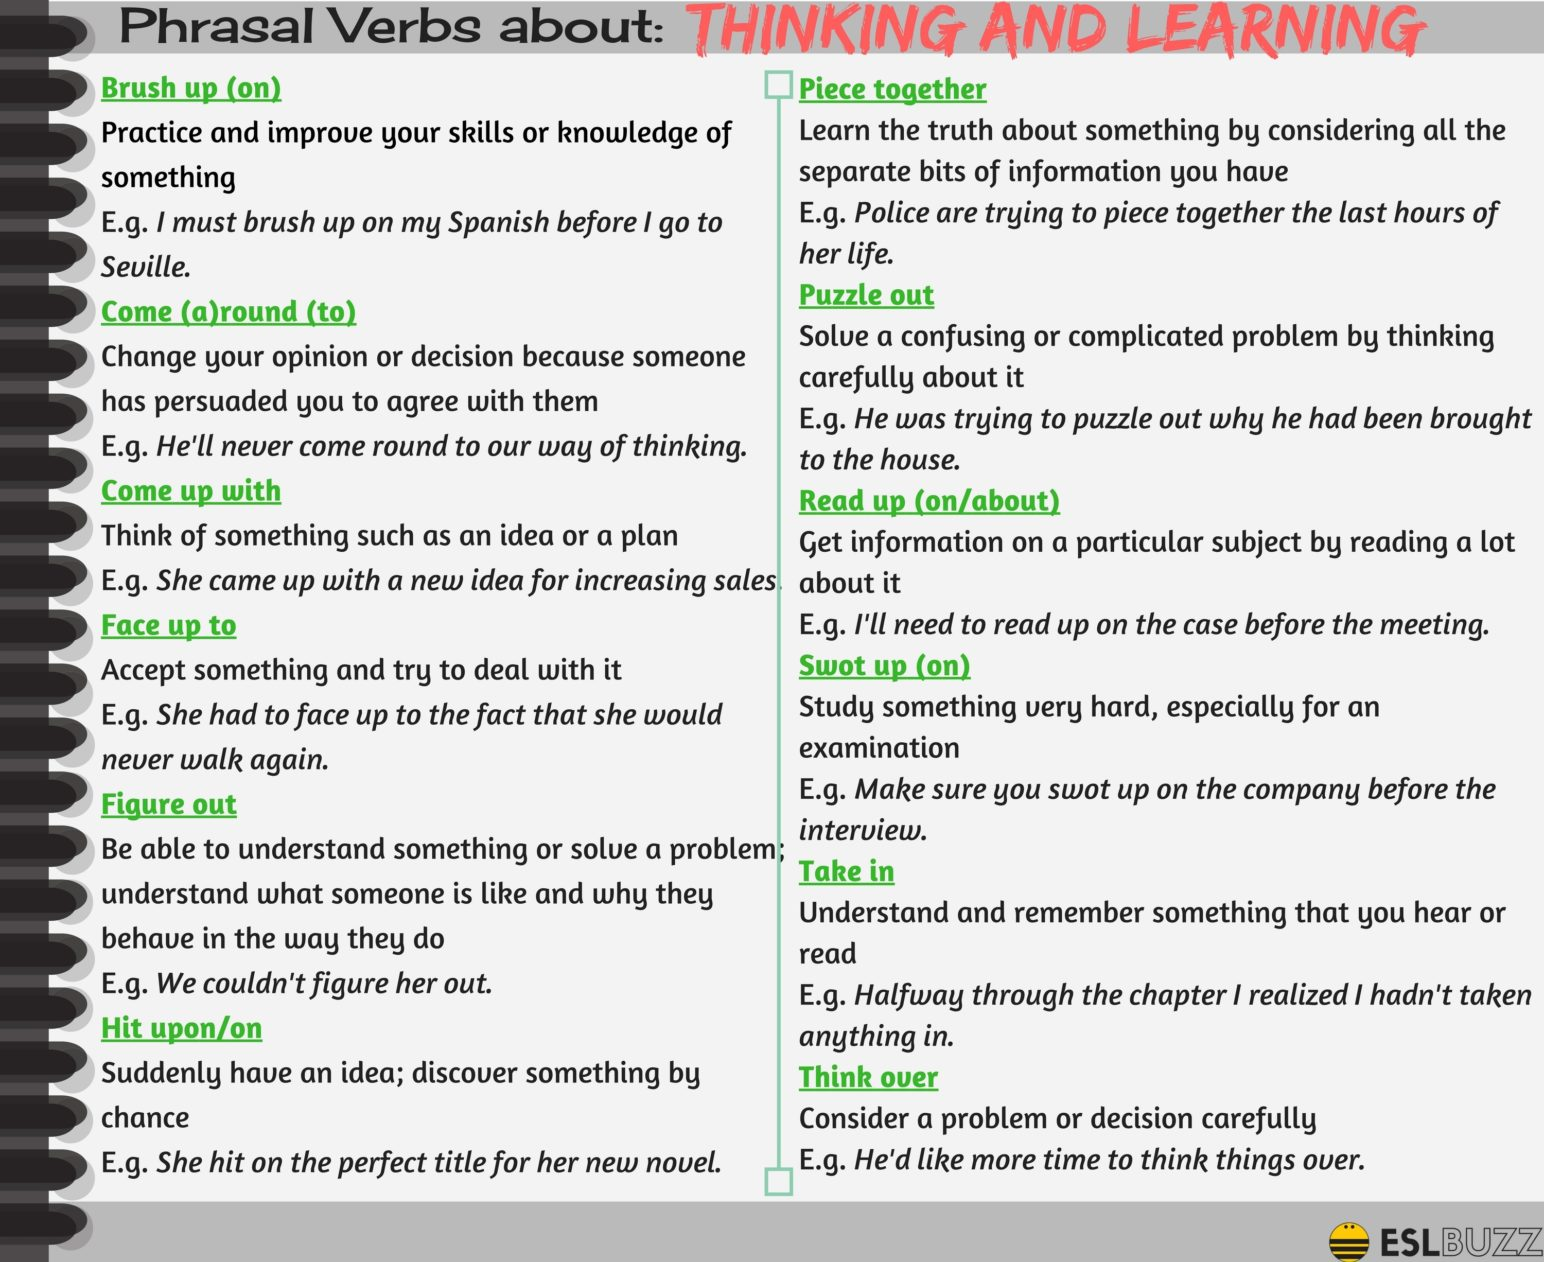 English Phrasal Verbs for Communication with Useful Examples 2